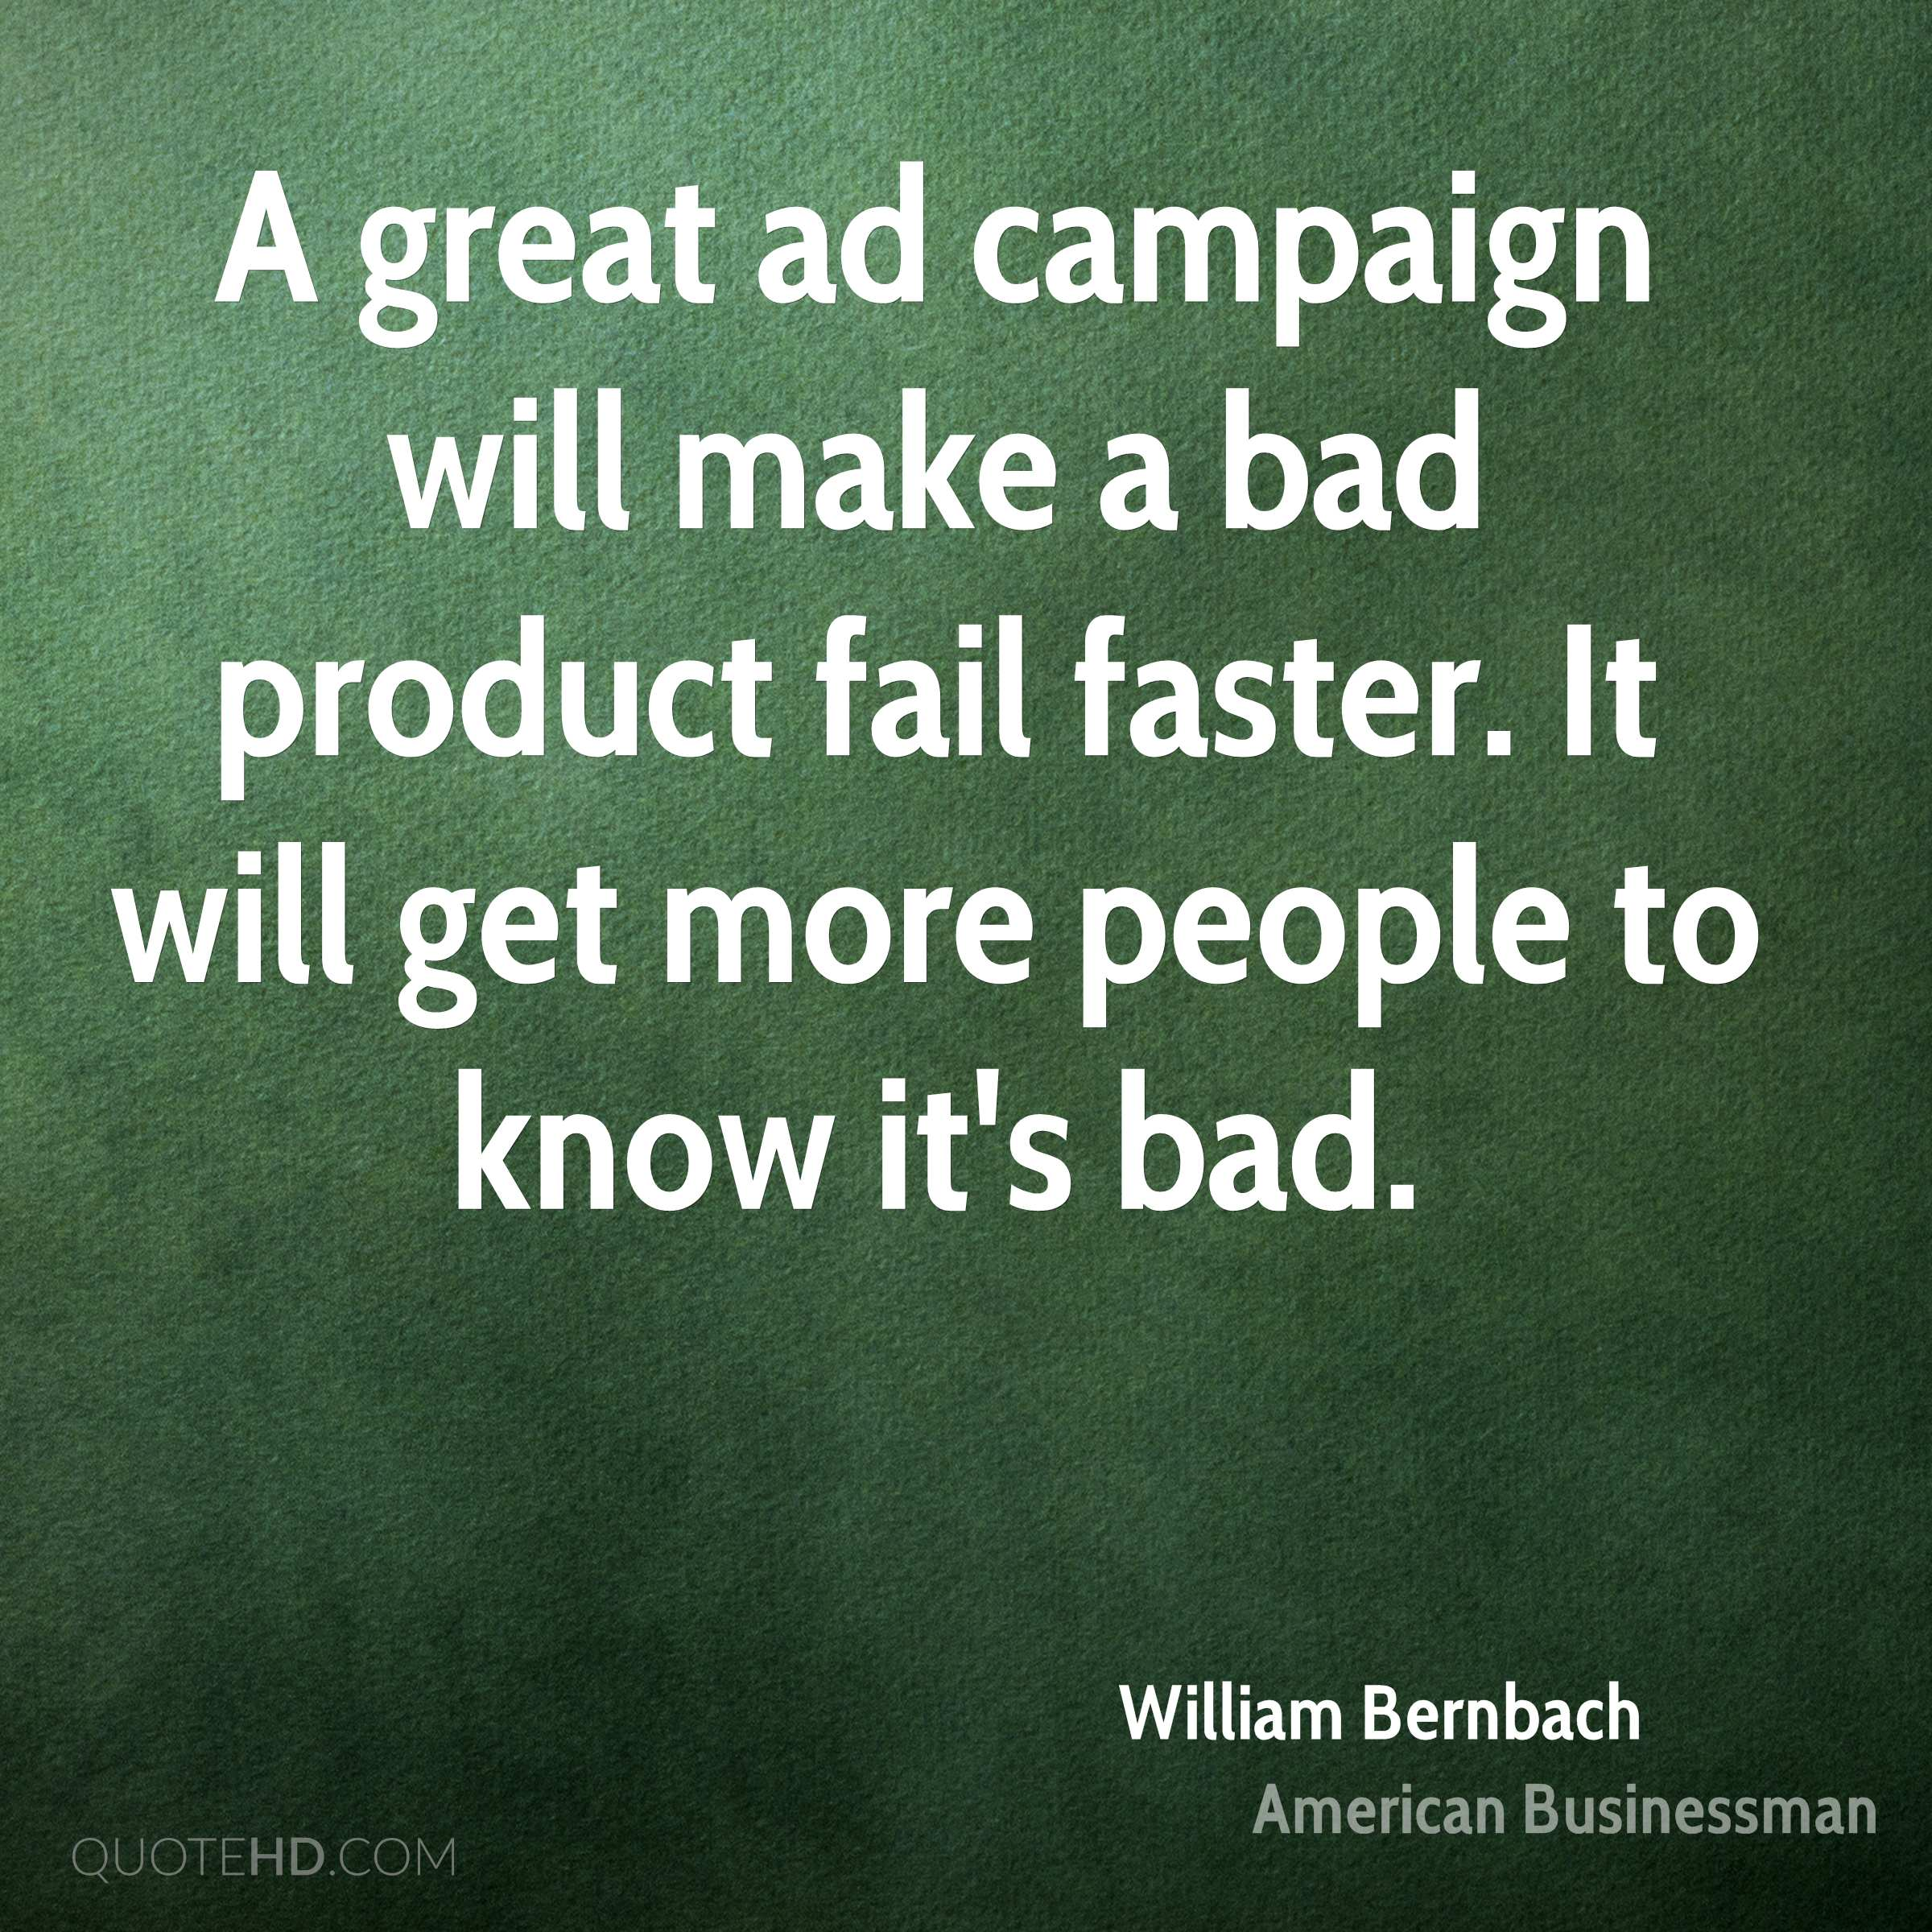 A great ad campaign will make a bad product fail faster. It will get more people to know it's bad.